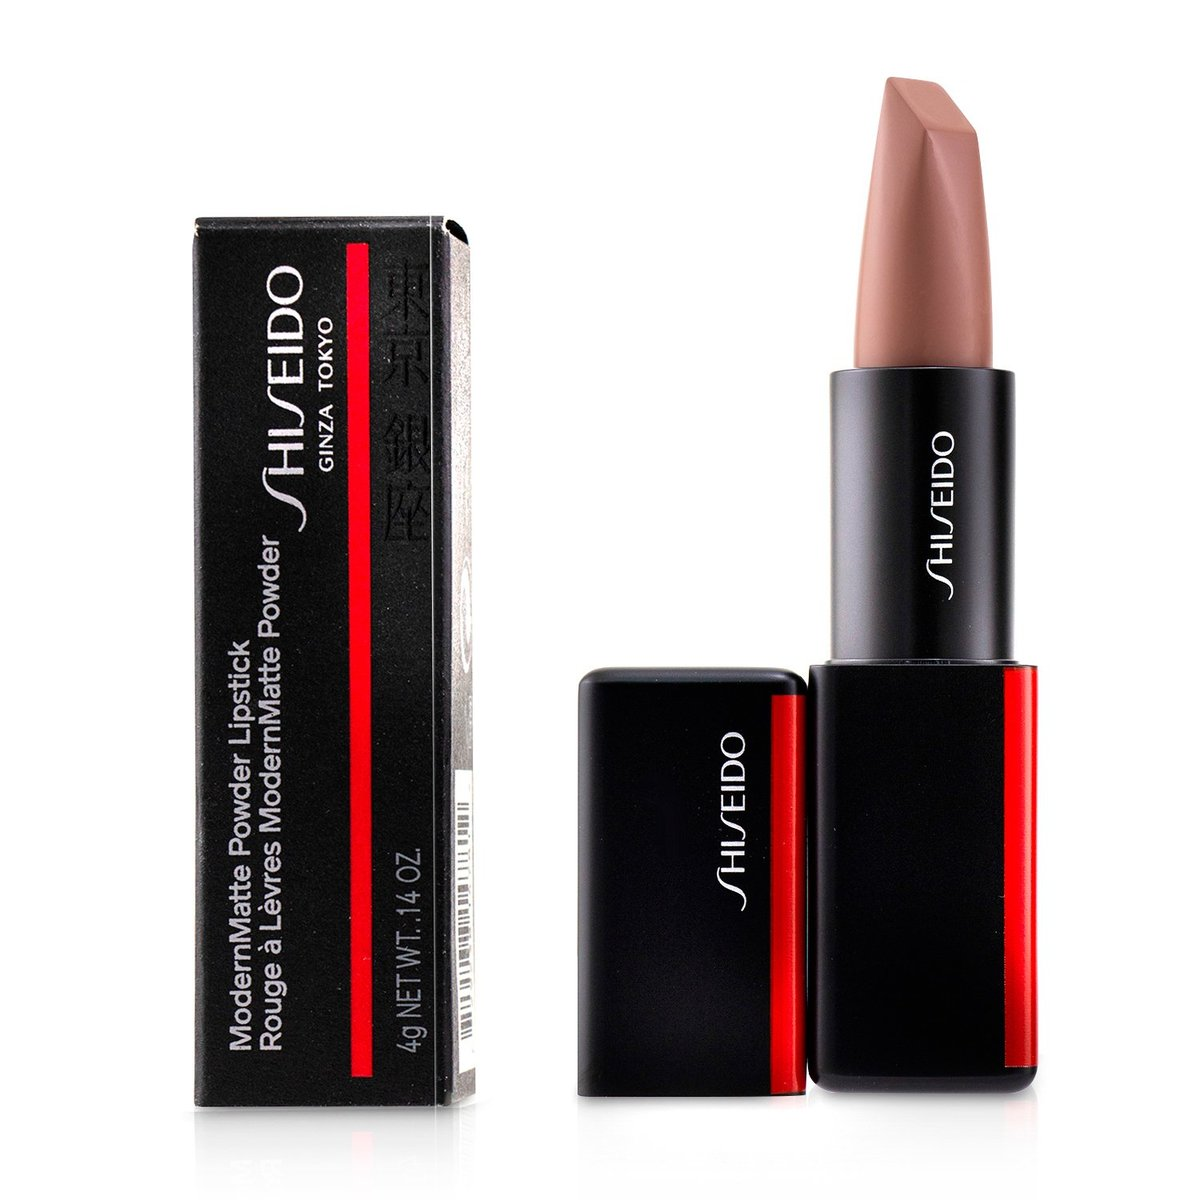 ModernMatte Powder Lipstick - # 502 Whisper (Nude Pink)  -[Parallel Import Product]